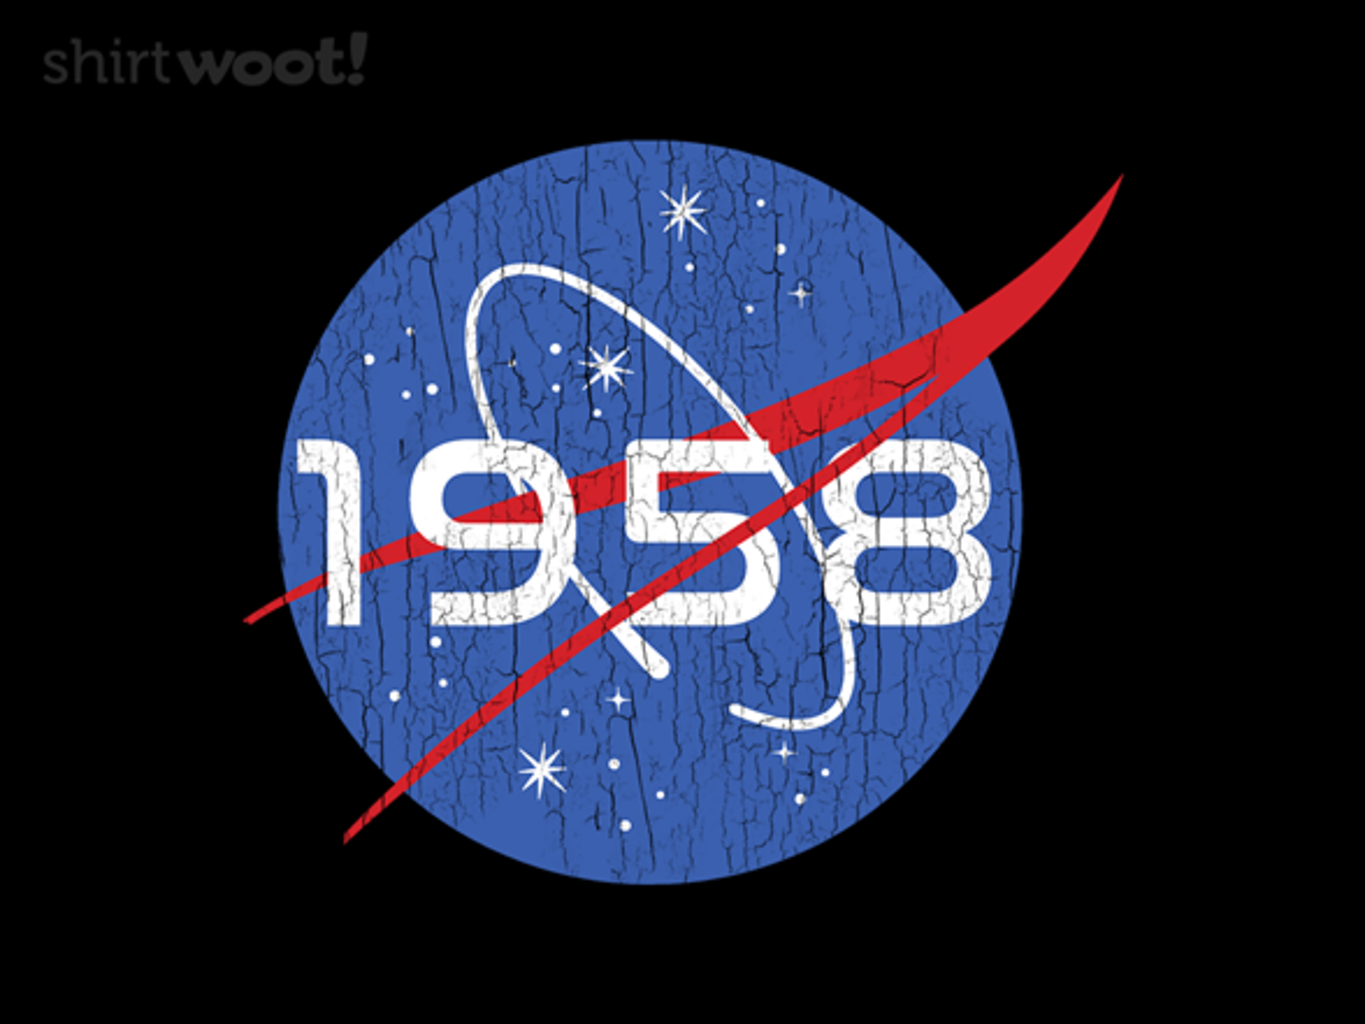 Woot!: 1958